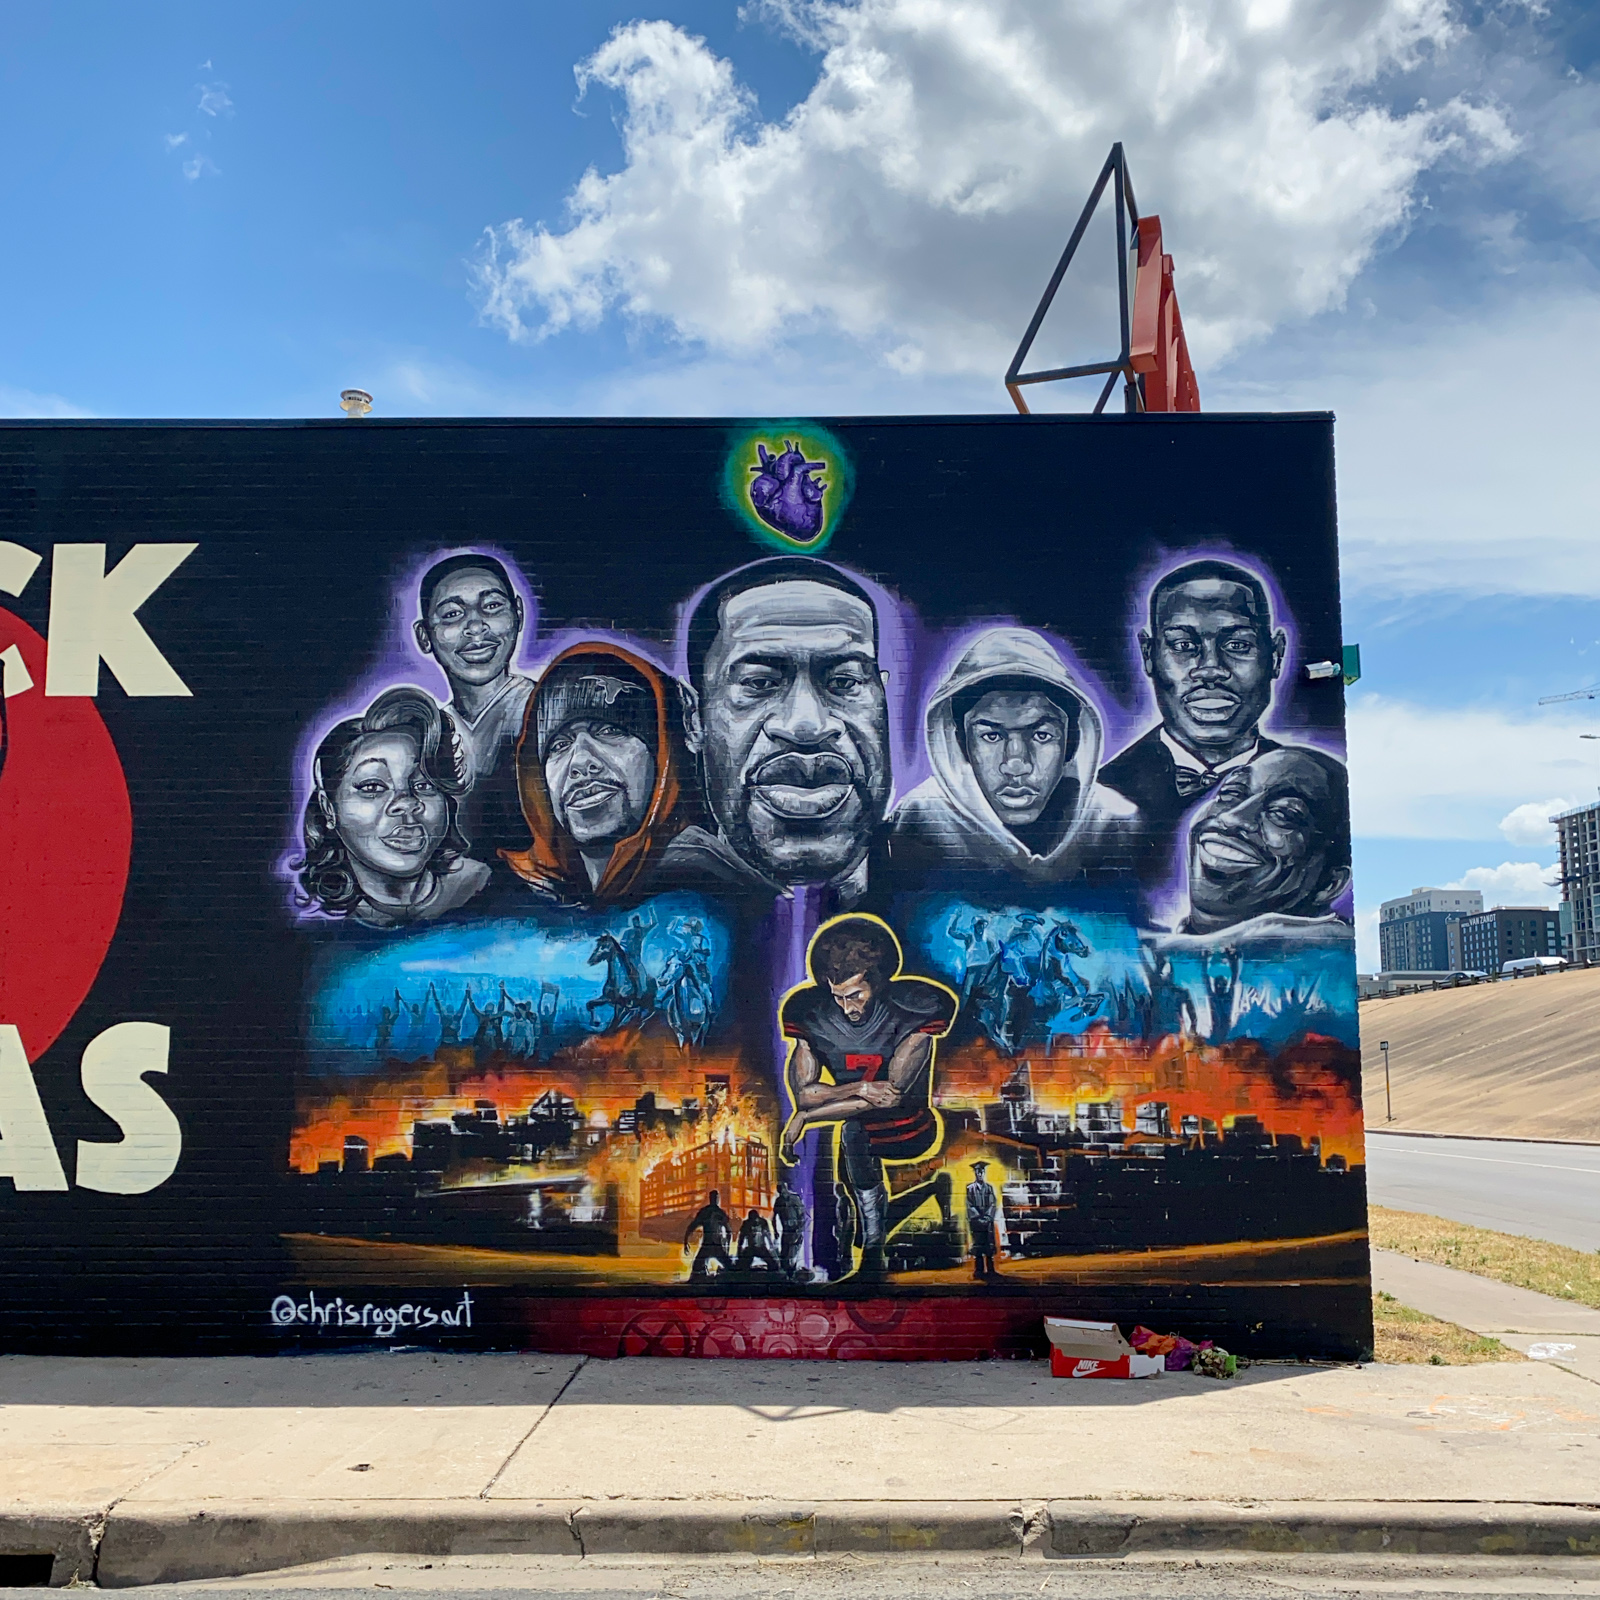 A mural painted in honor of George Floyd and others